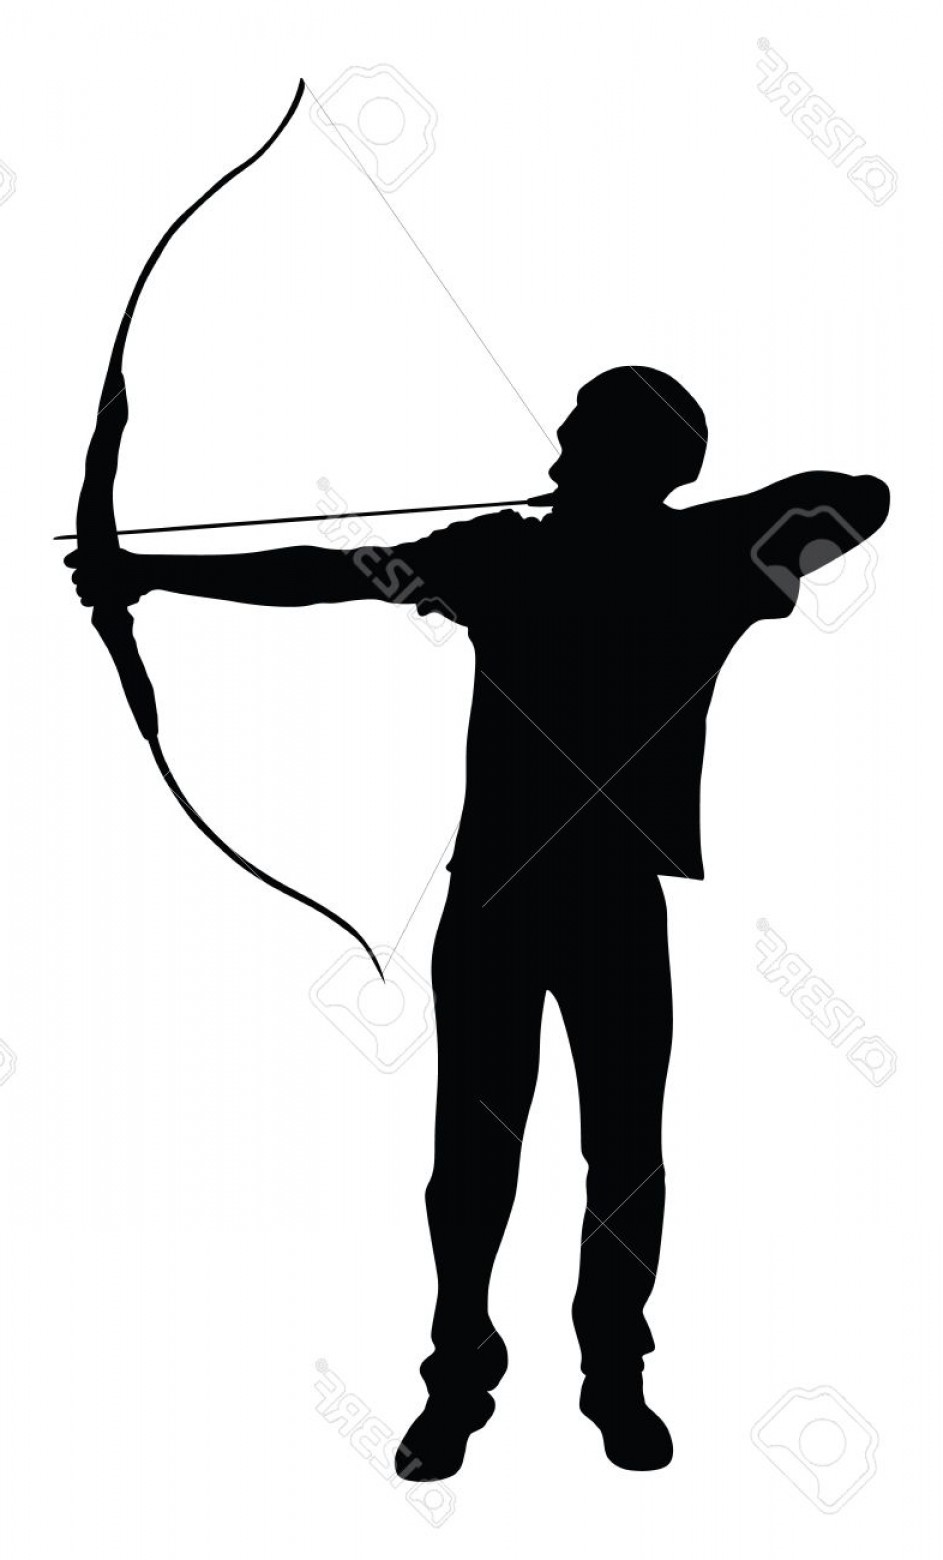 Vector Archery Silhouette: Photostock Vector Archer Vector Silhouette Symbol Illustration Isolated On White Background